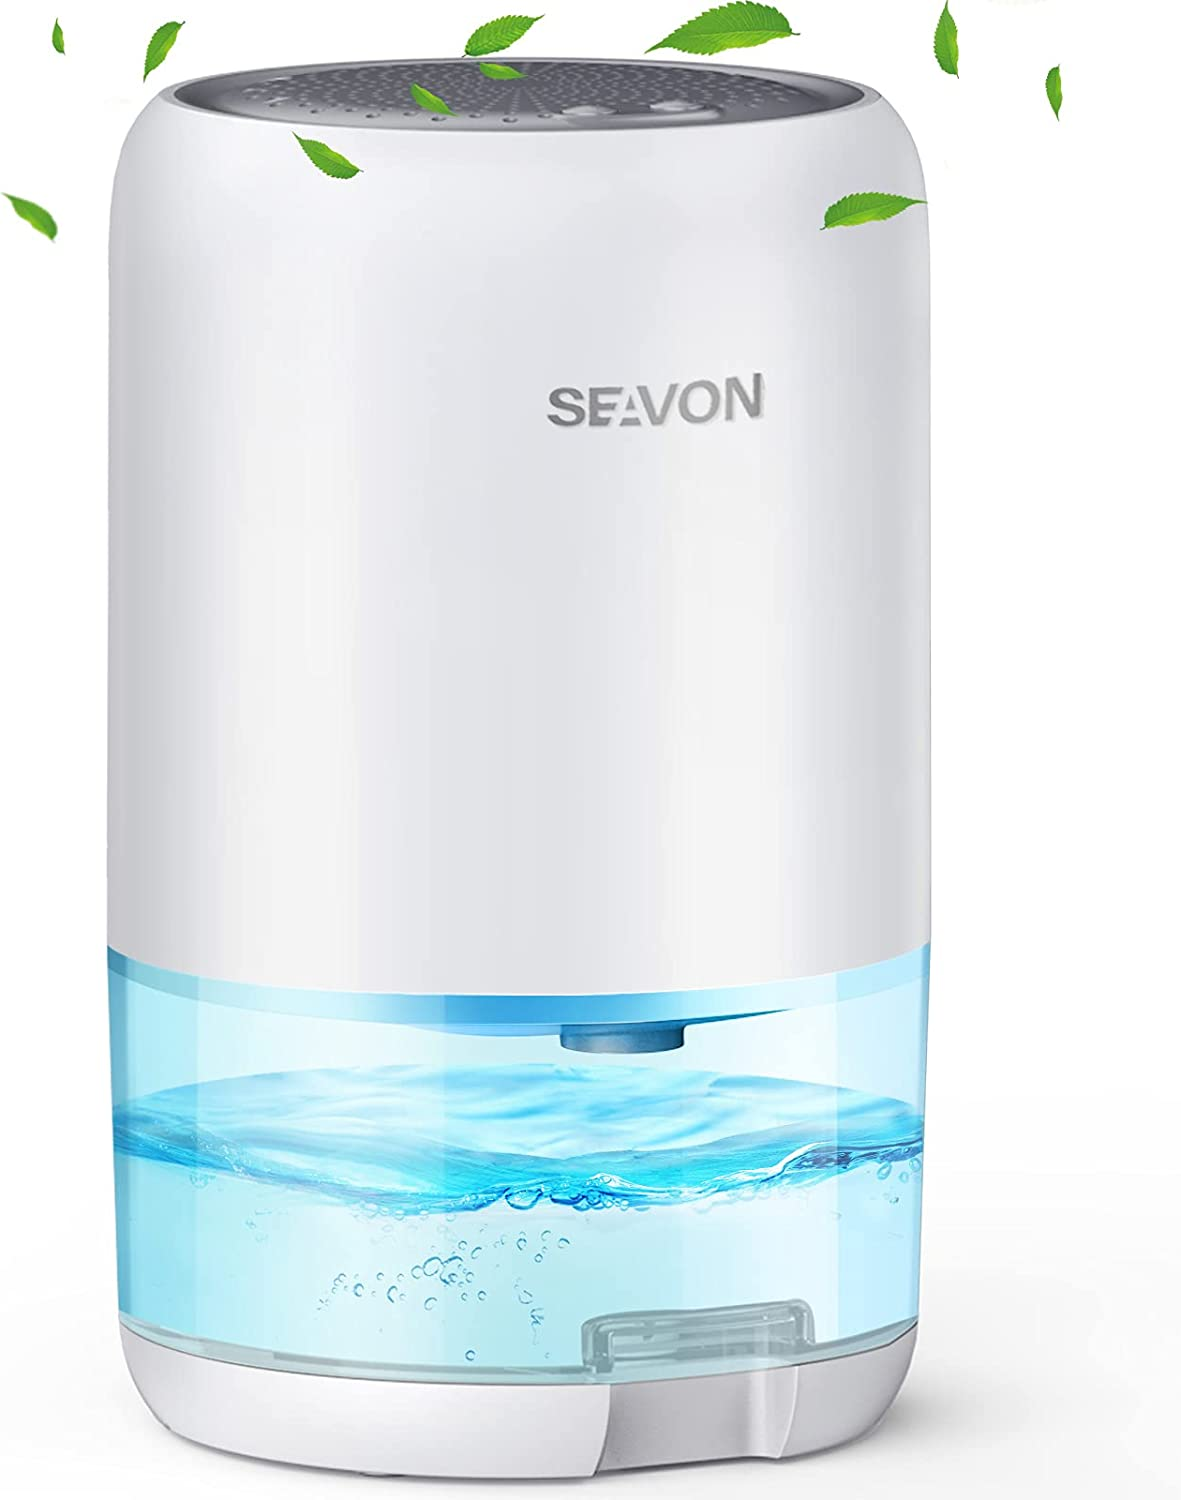 Outlet SALE SEAVON Year-end gift Dehumidifier for Home Cubic Feet Small 2600